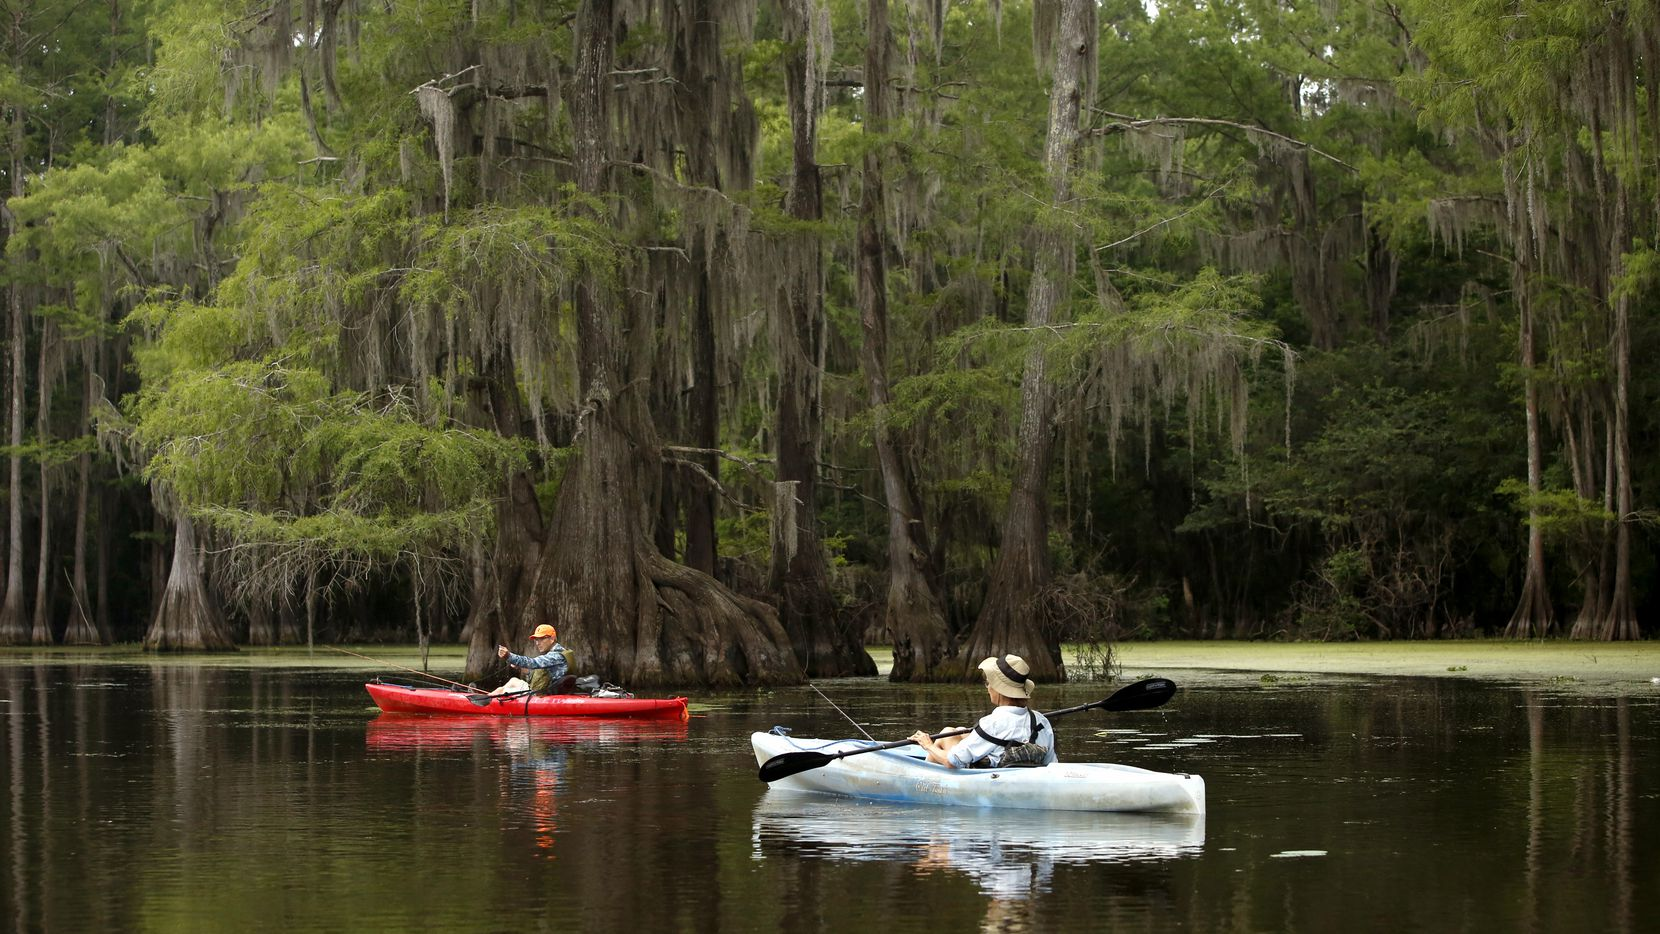 Boaters enjoyed some early-morning fishing at Caddo Lake in June 2018. With its 25,400-acre mosaic of swamps, ponds and bayous, Caddo Lake has a lush landscape that equals anything Louisiana has to offer.